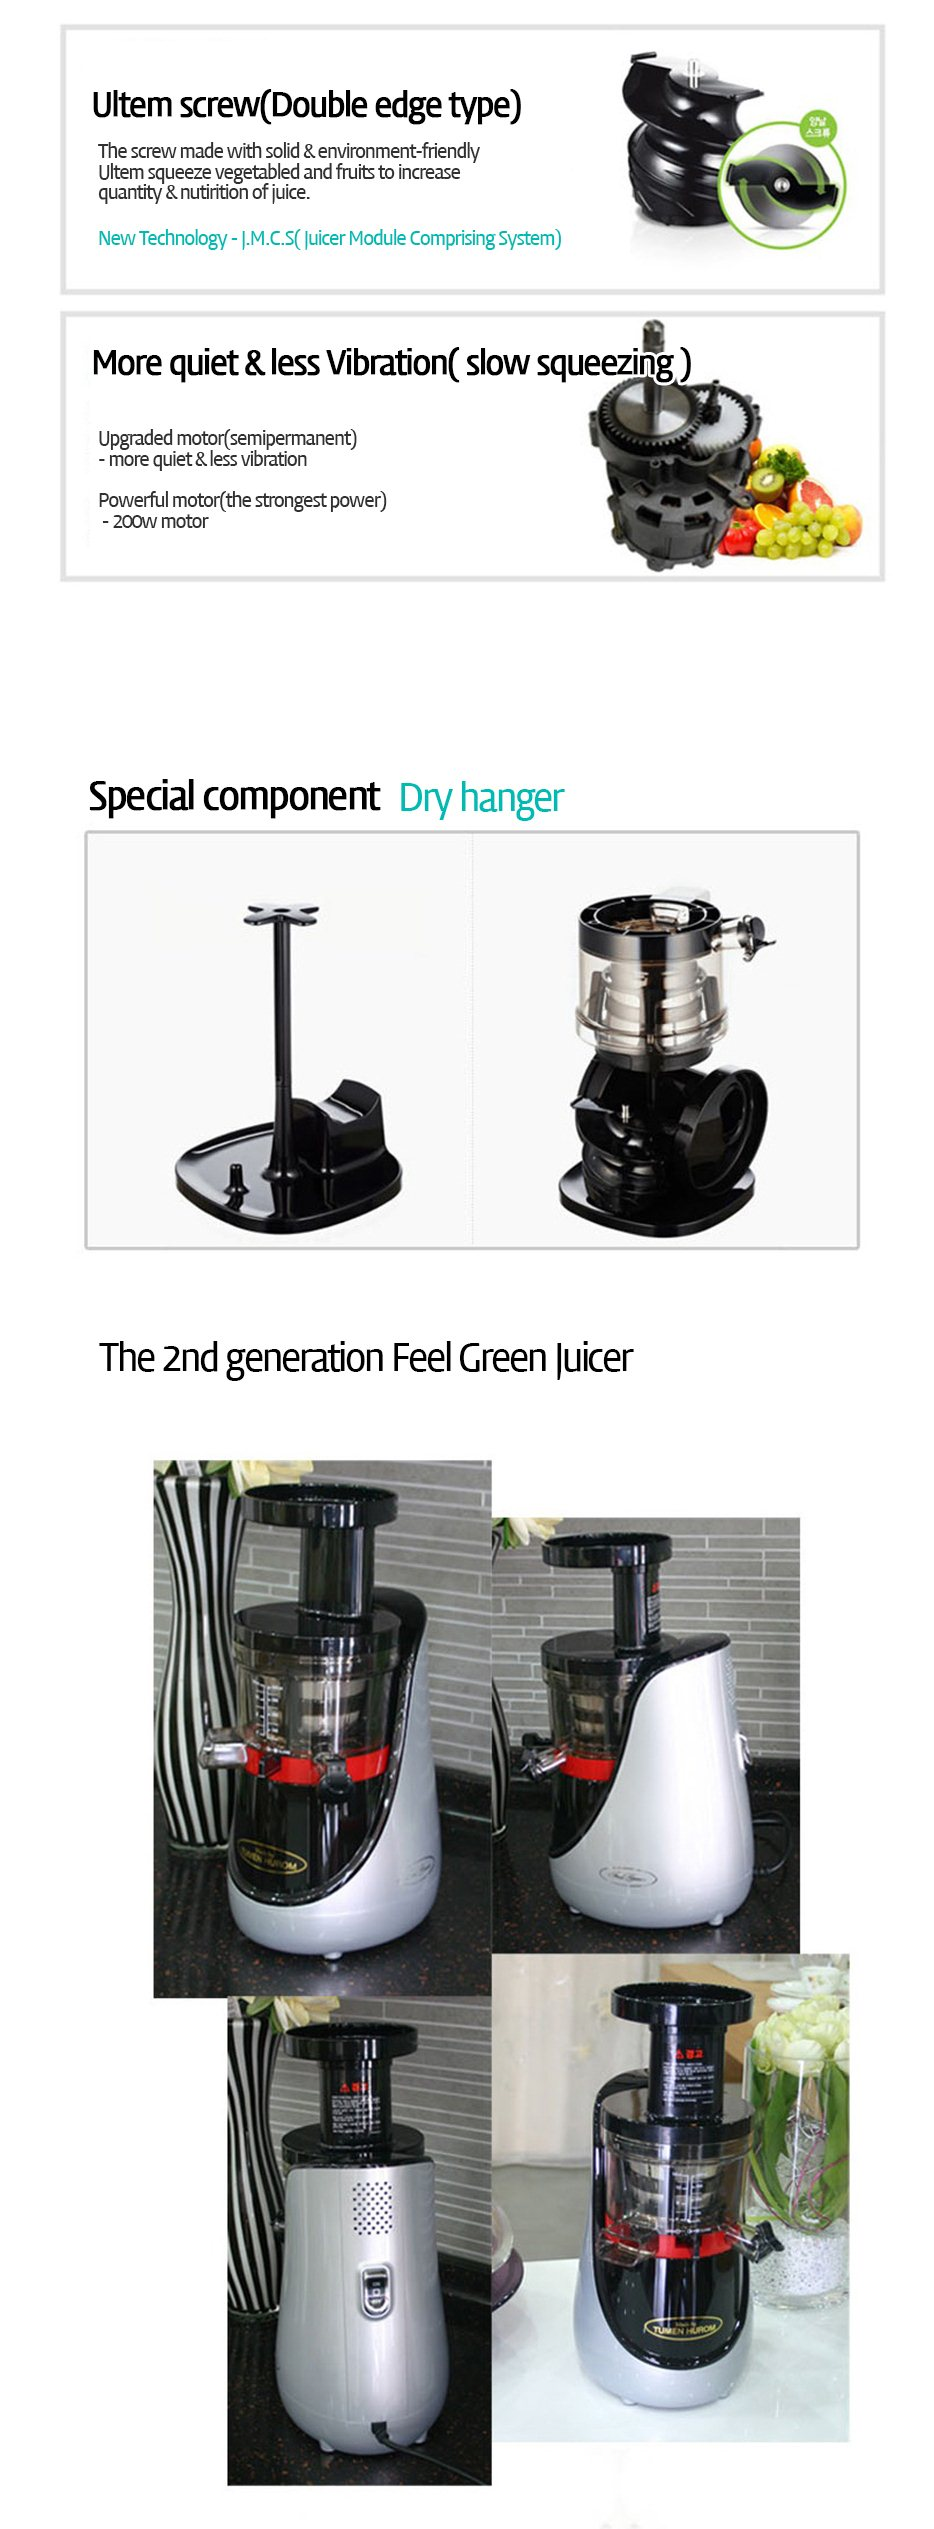 Kuvings Slow Juicer Assembly : Buy [HUROM]2014 HH-SBF11 2ND Generation Hurom Juicer Slow Juicer HD-BBF09/HD-RBF09 Deals for ...